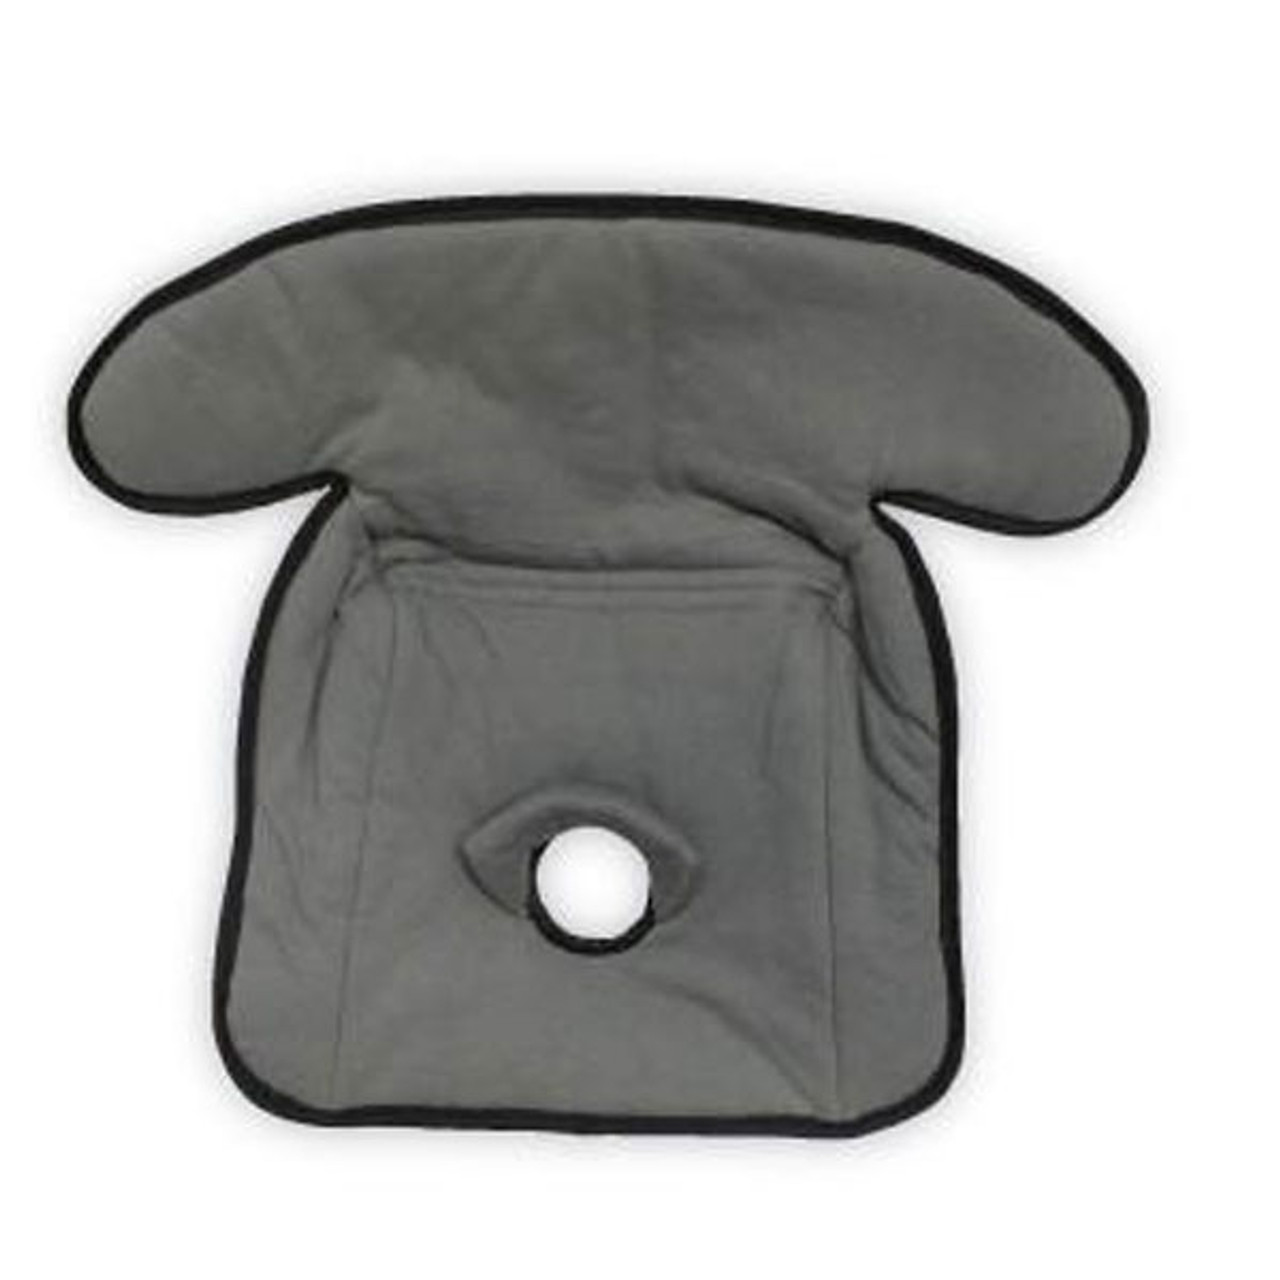 Two Nomads Super Dry Seat at Baby Barn Discounts Two Nomads Super Dry Seat is a seat protector with high back to stop leaks.